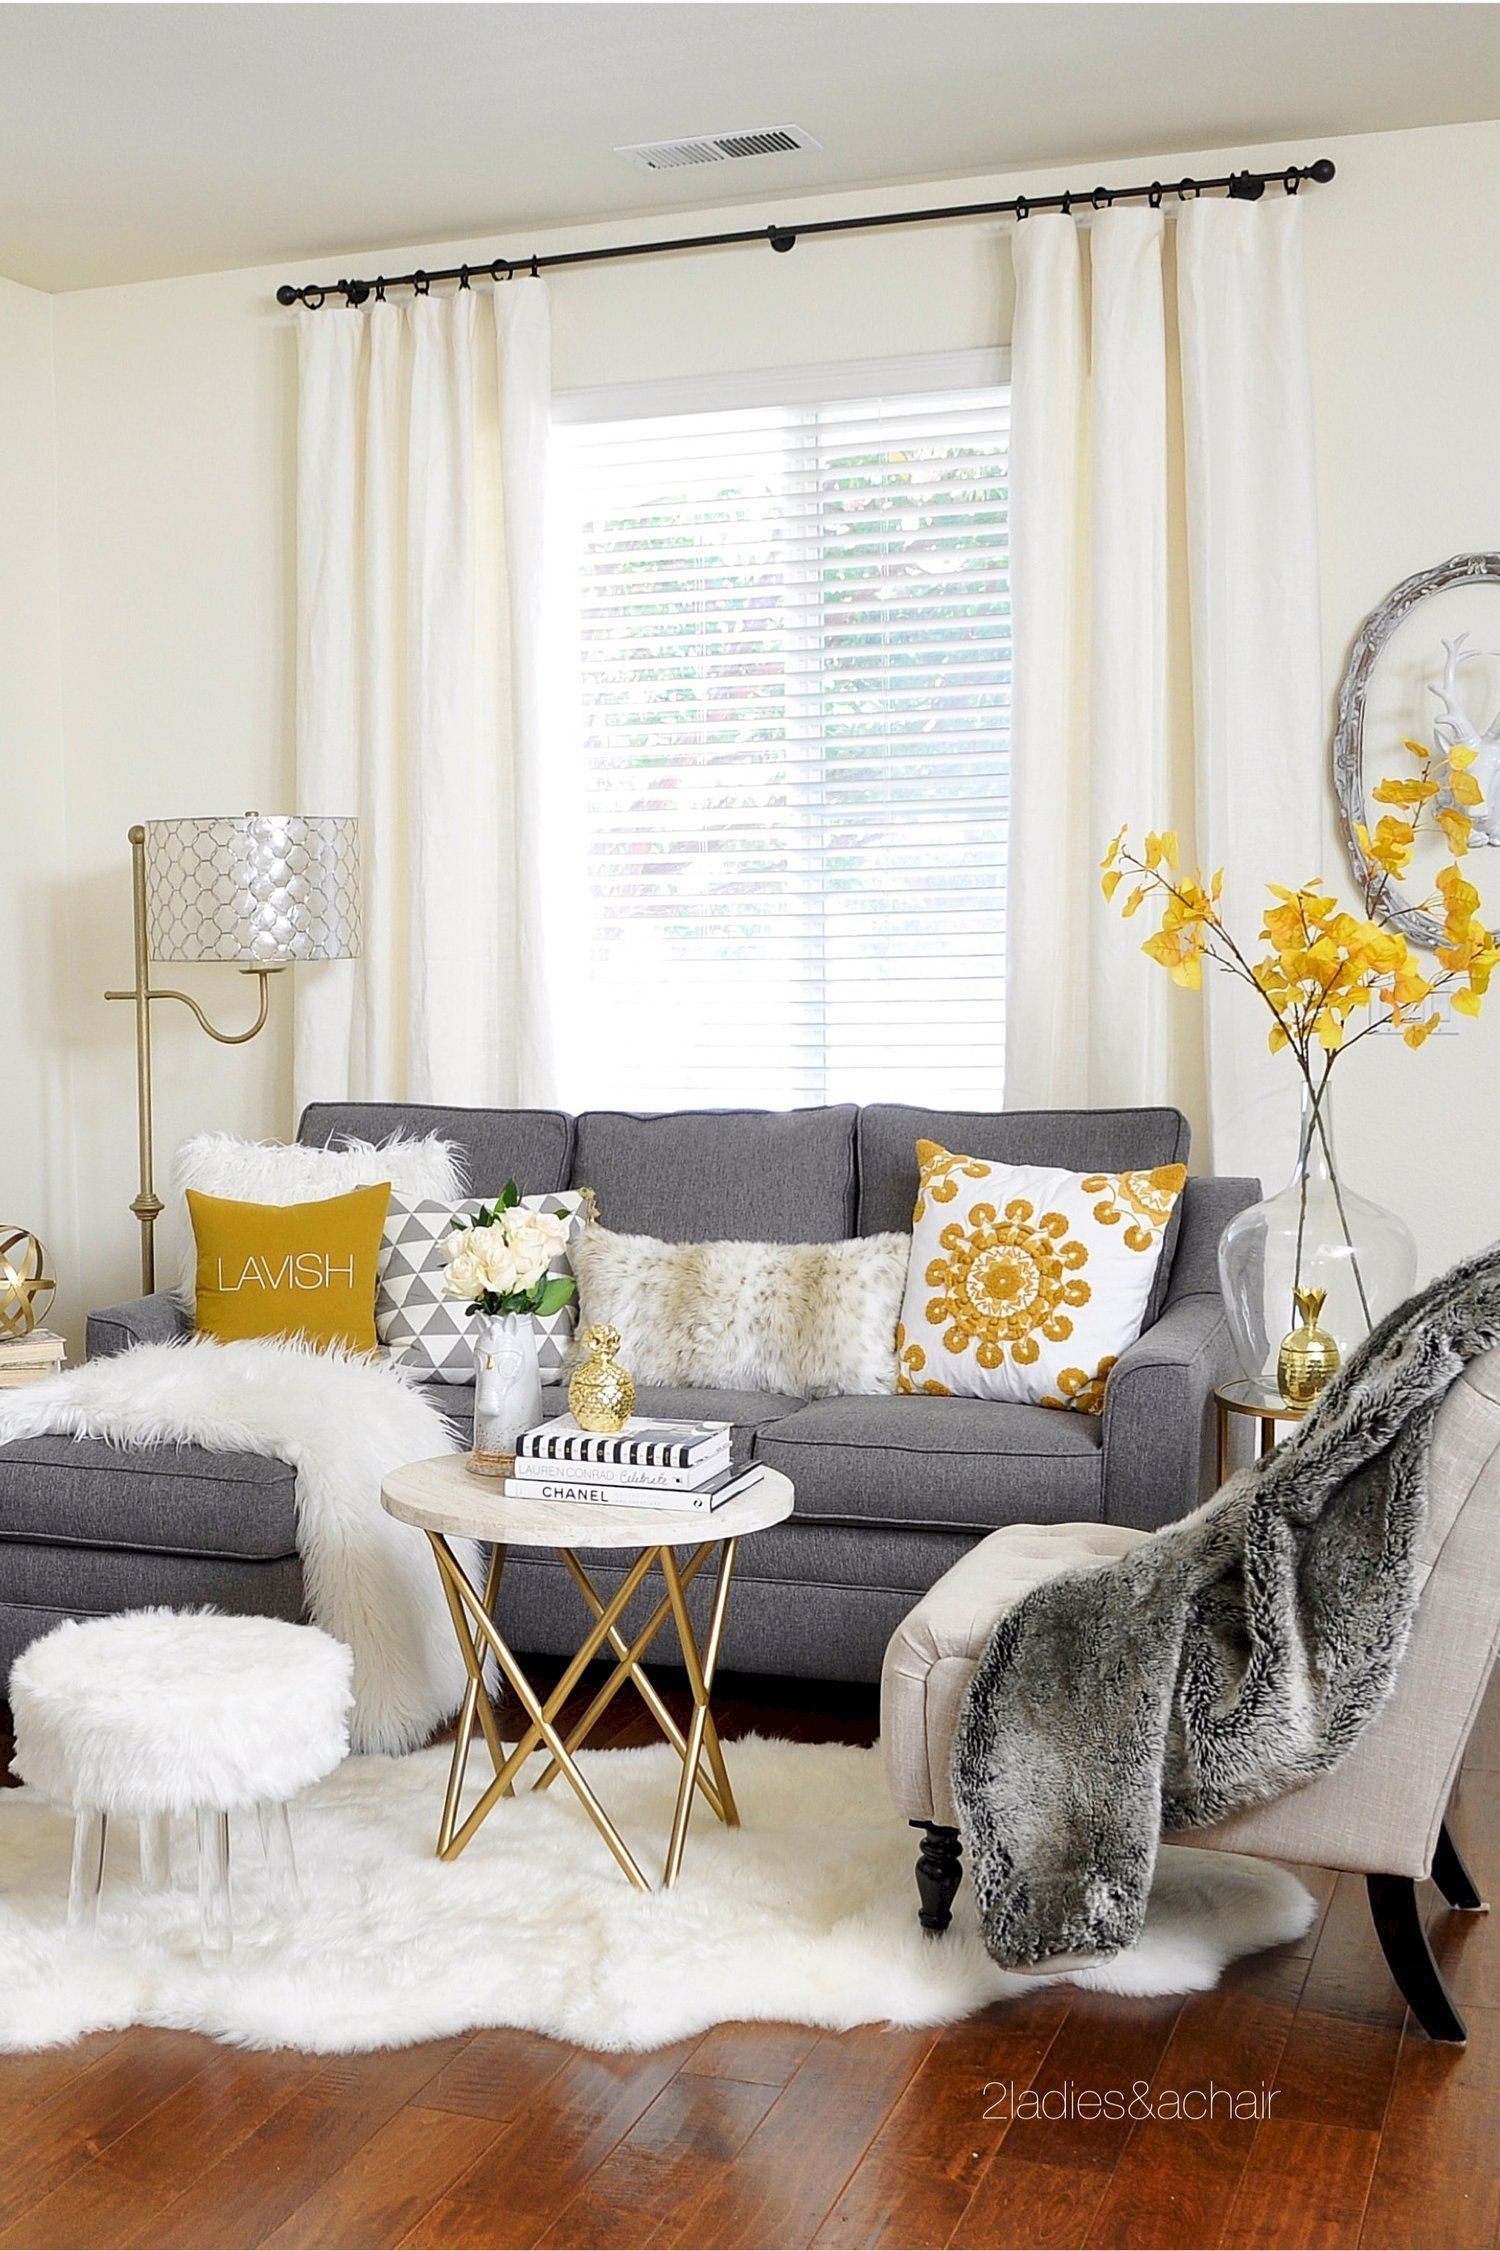 55 Small Living Room Design Ideas On A Budget 2021 ...